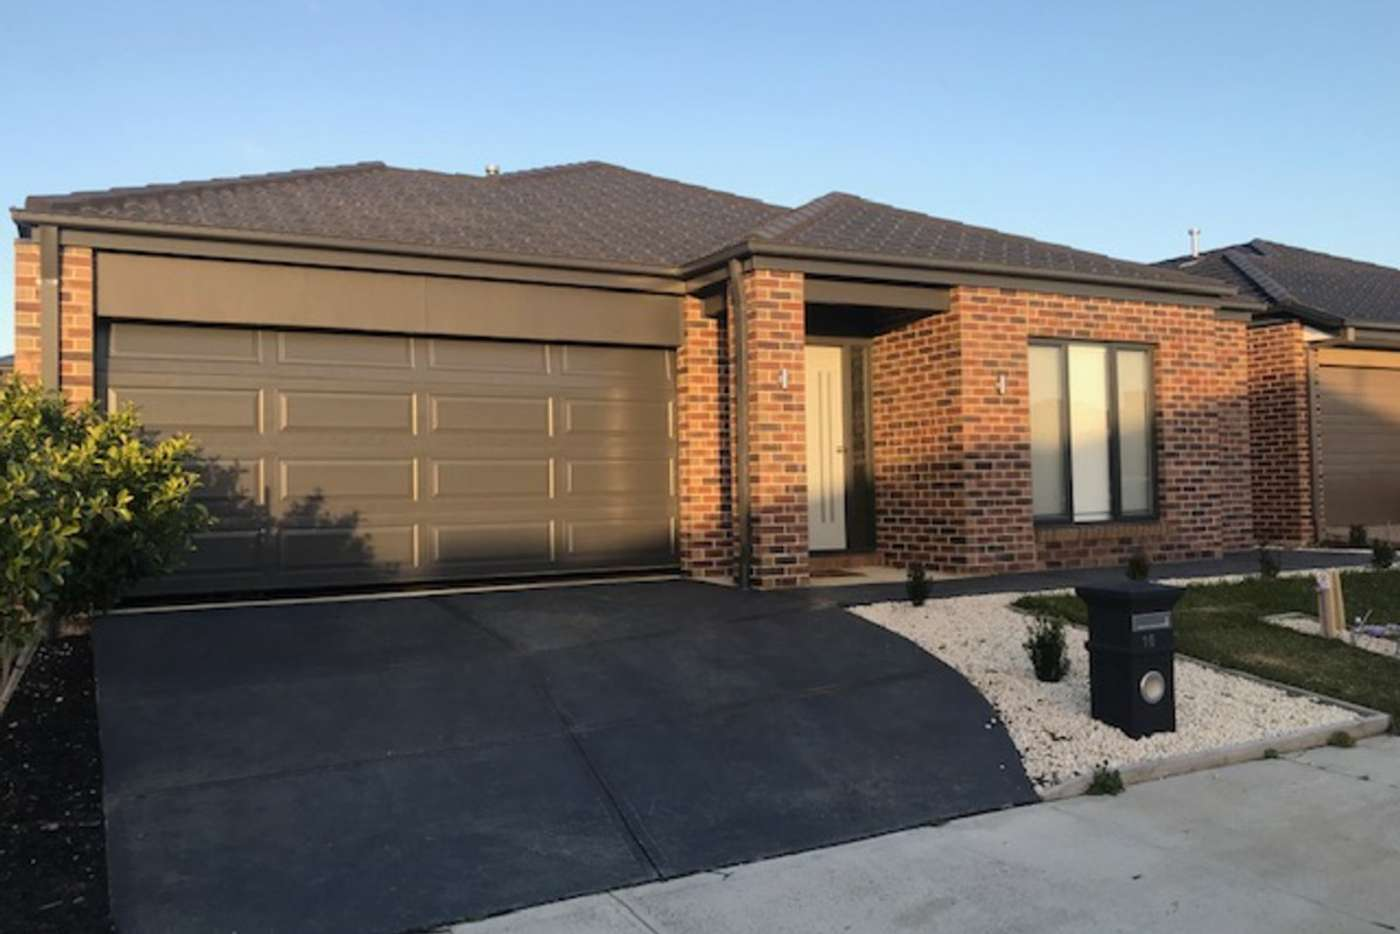 Main view of Homely house listing, 16 Walbrook Drive, Clyde North VIC 3978